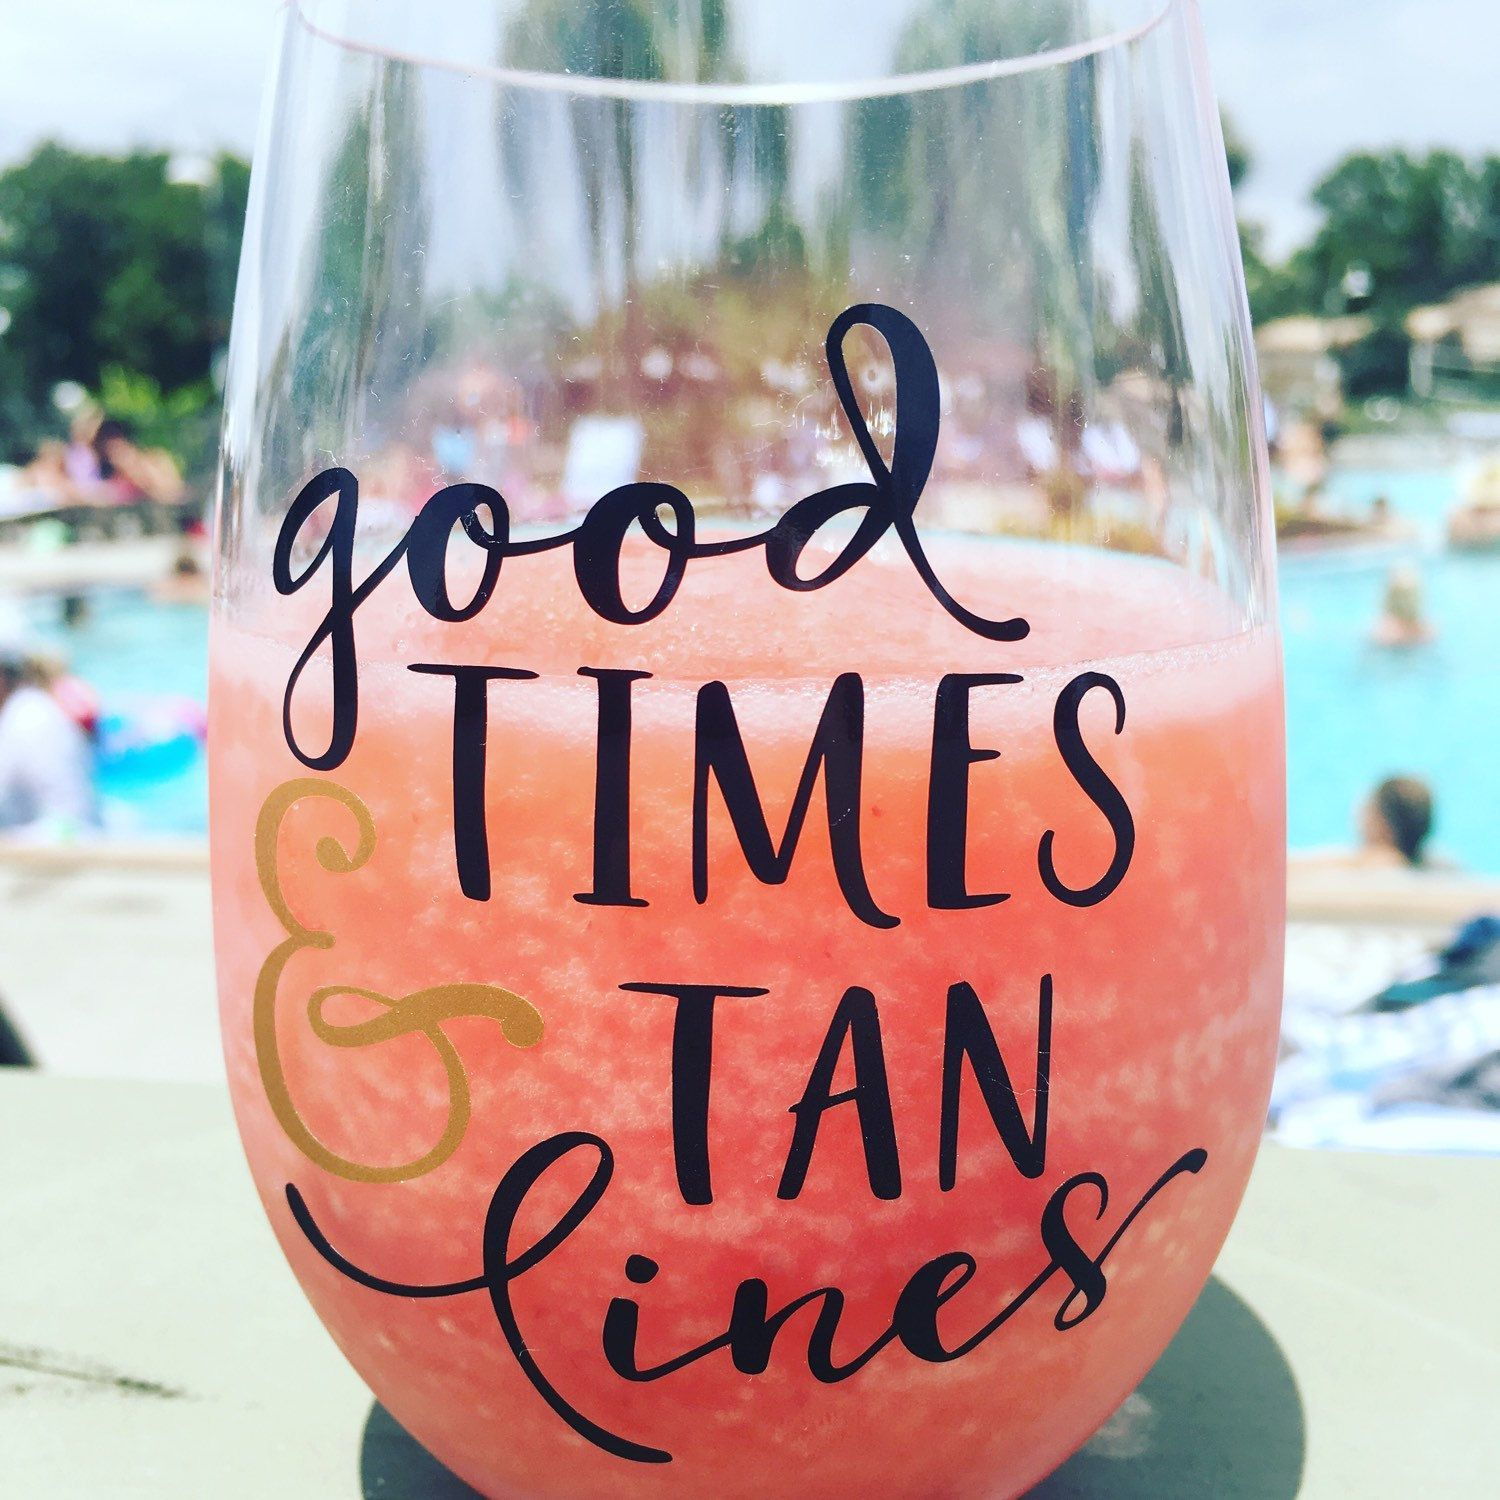 It S Summer Cool Off By The Pool With This Plastic Wine Drinking Glass Good Times Tan Lines Is Plastic Wine Glass Plastic Wine Cups Wine Glass Sayings